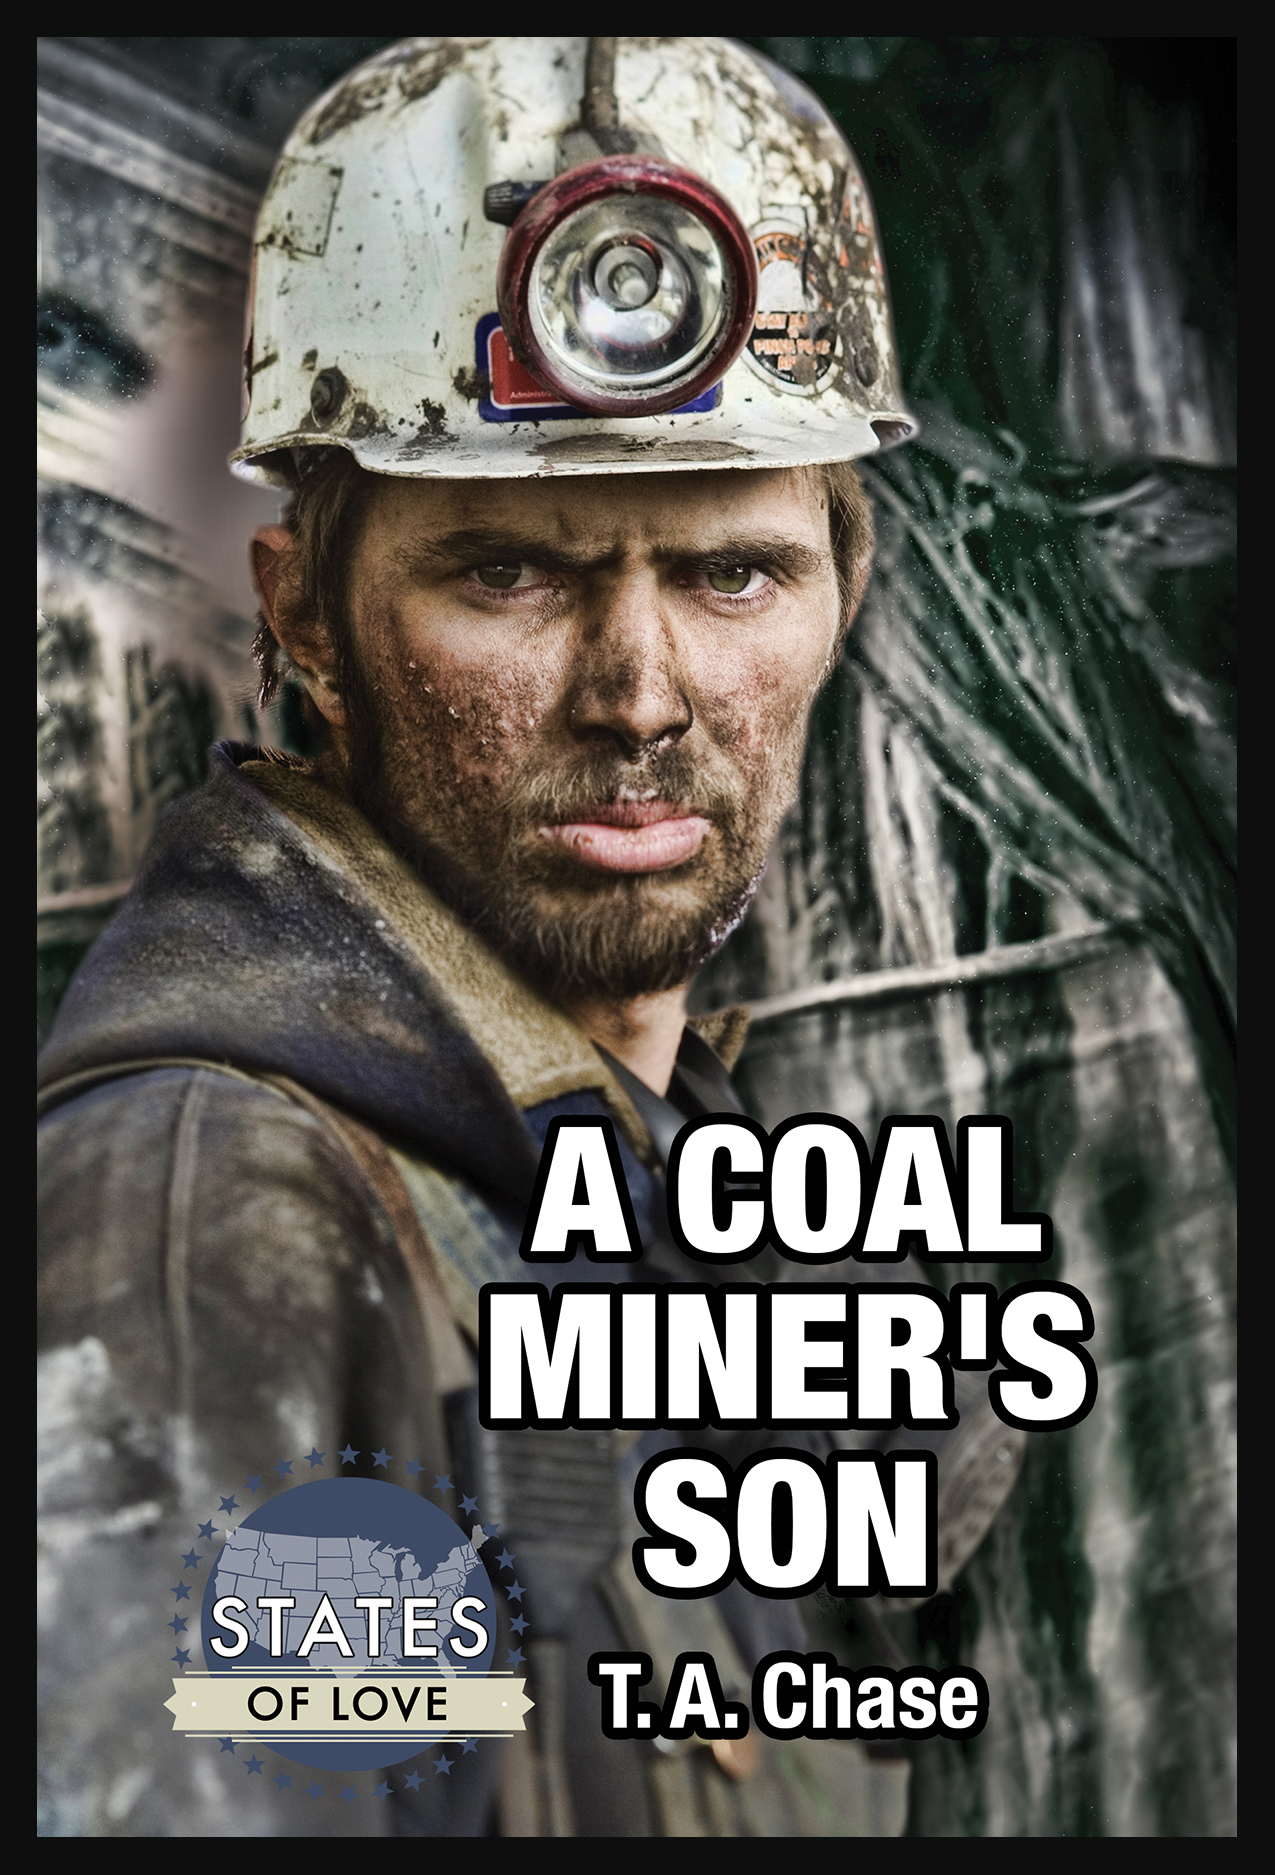 A Coal Miner's Son by T.A. Chase